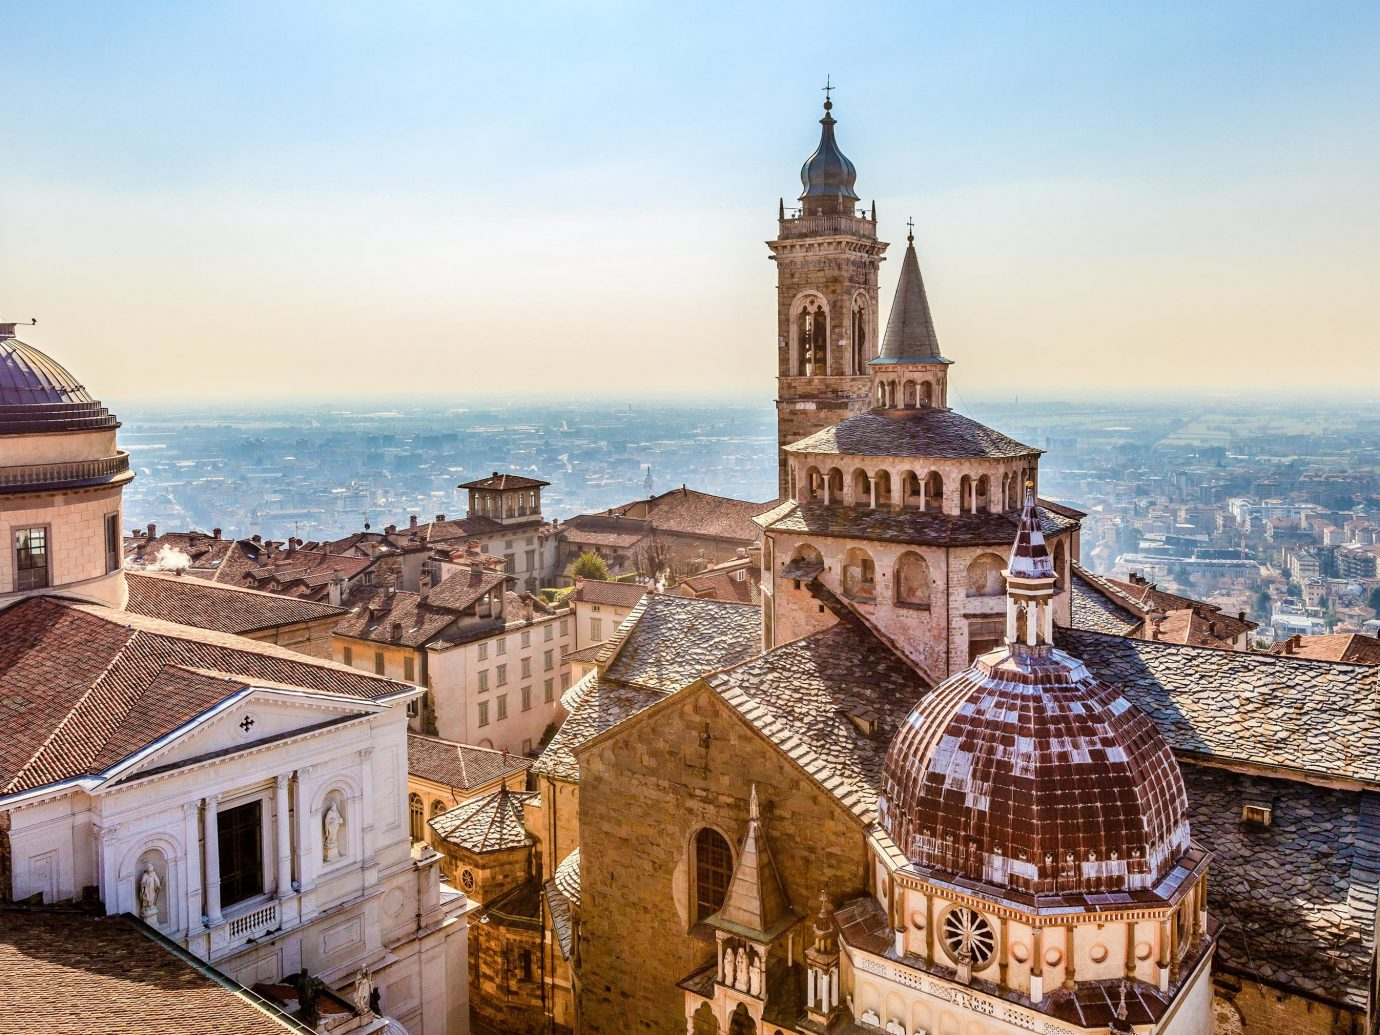 europe Italy Off-the-beaten Path Trip Ideas sky landmark Town City historic site building history spire ancient history medieval architecture tourism tourist attraction steeple roof château Church bell tower tower middle ages place of worship cathedral facade basilica monastery